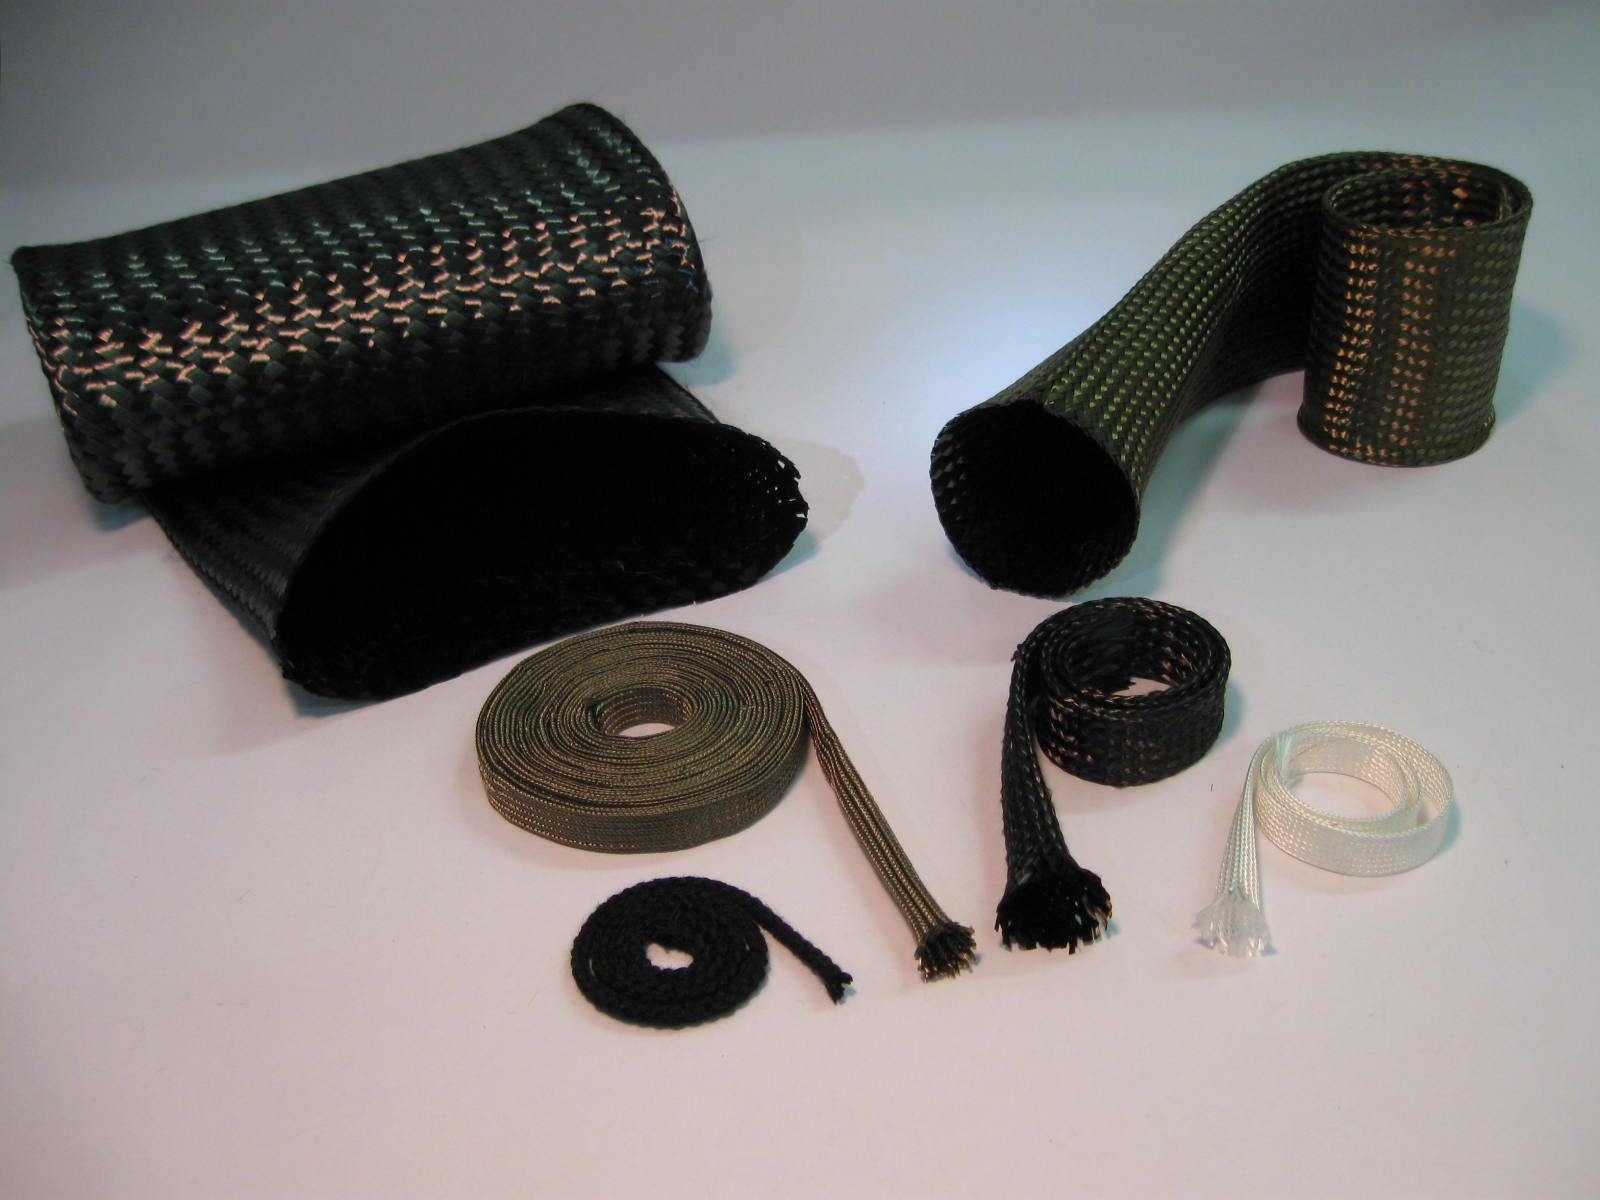 images/com_hikashop/upload/sleeving_array.jpg